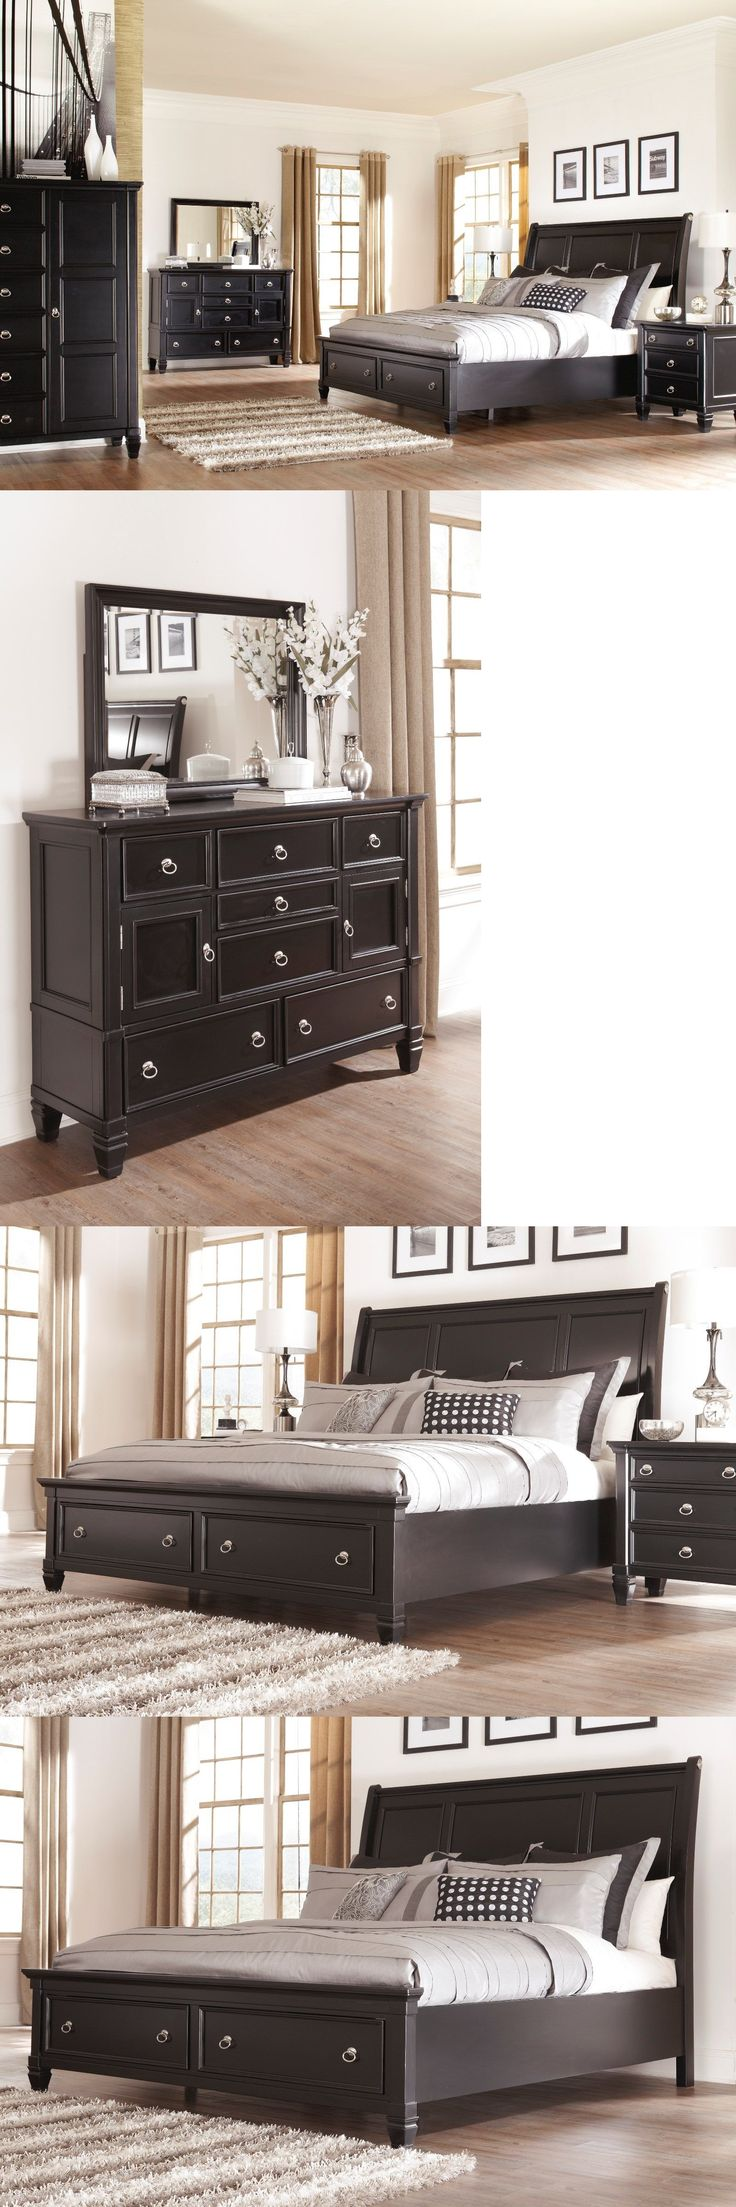 Bedroom Sets 20480  Ashley Greensburg 6 Piece Queen Bed Set W Footboard  Storage Furniture B671. Best 25  Ashley furniture bedroom sets ideas on Pinterest